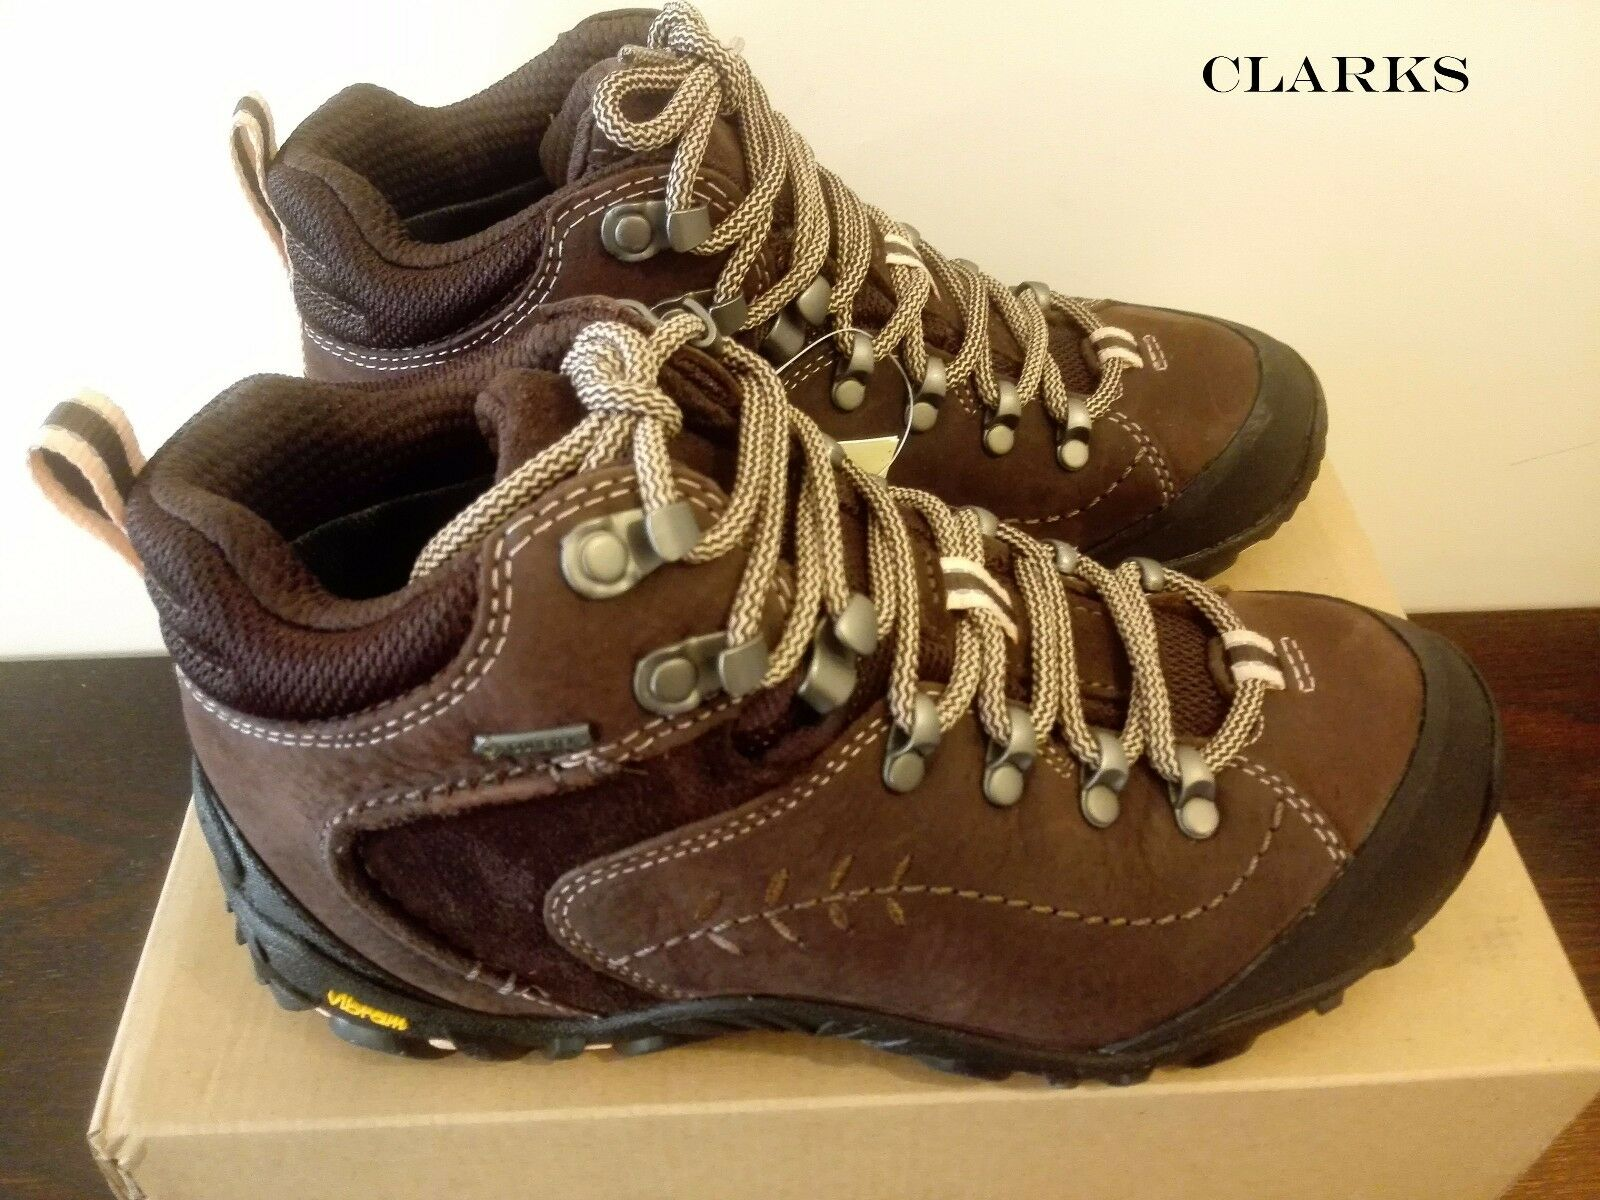 CLARKS Ignify Mid GTX Dark Brown Leather Women's HIKING Boots RRP